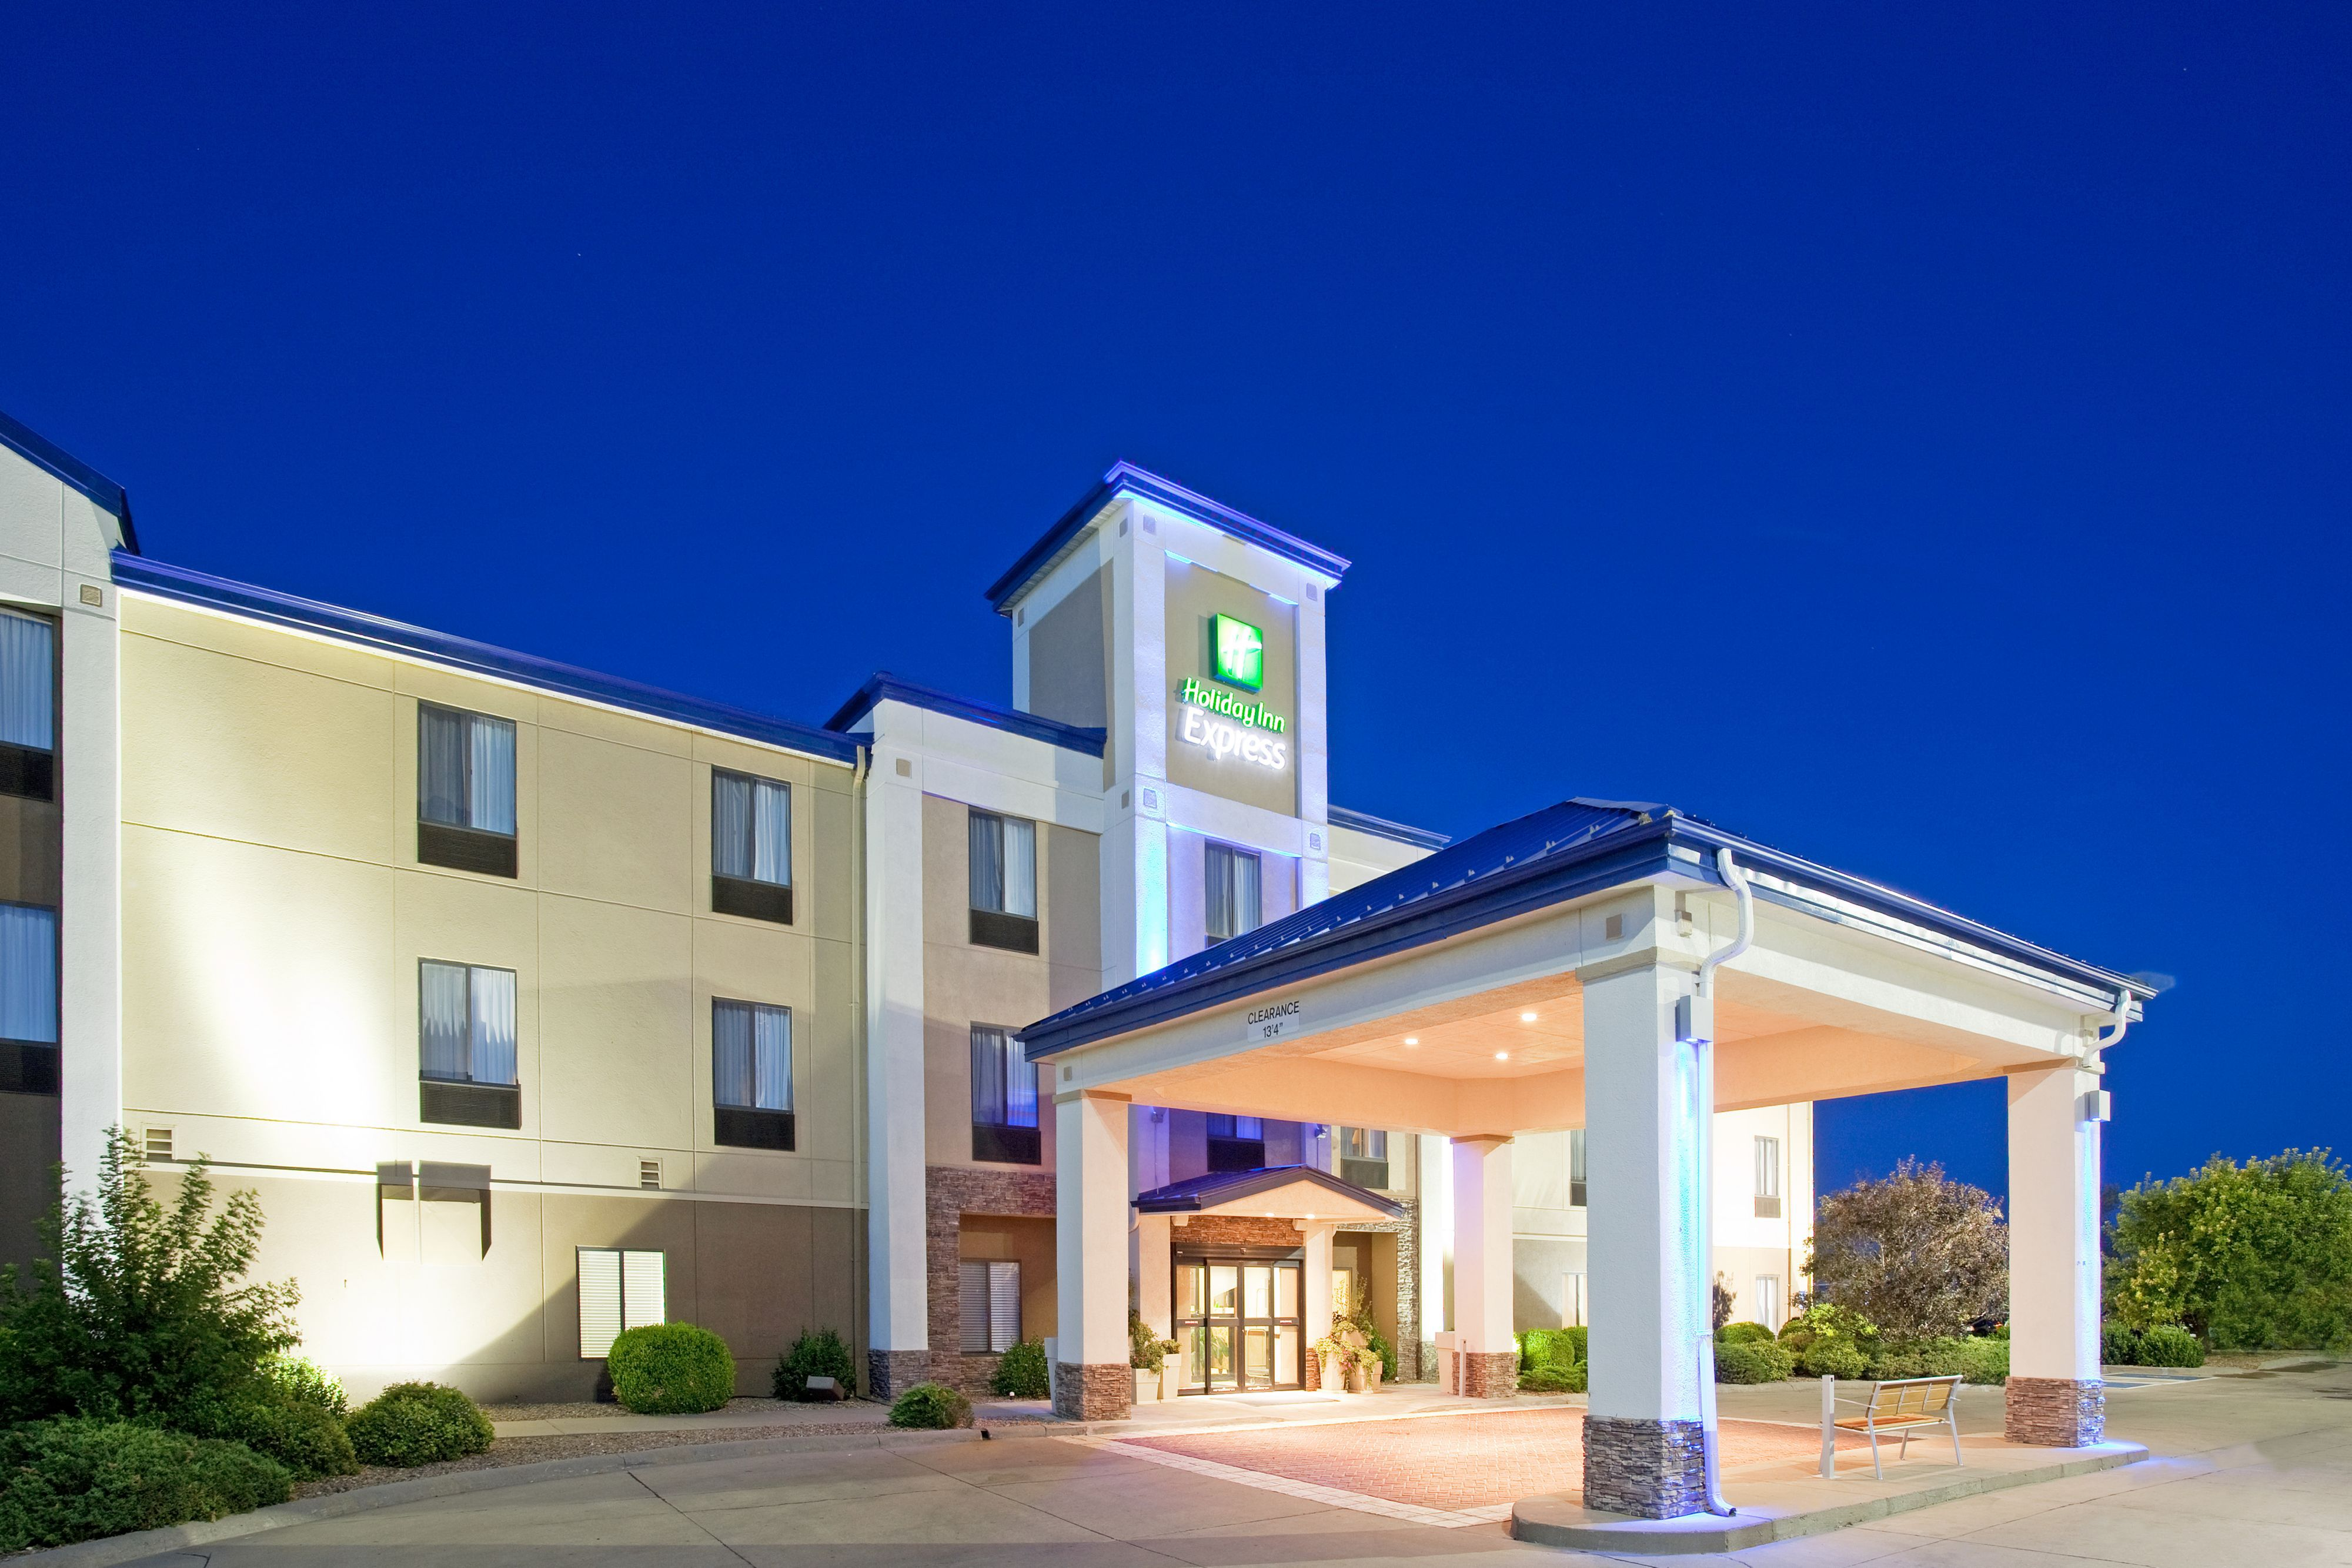 Holiday Inn Express & Suites Gallup East image 4